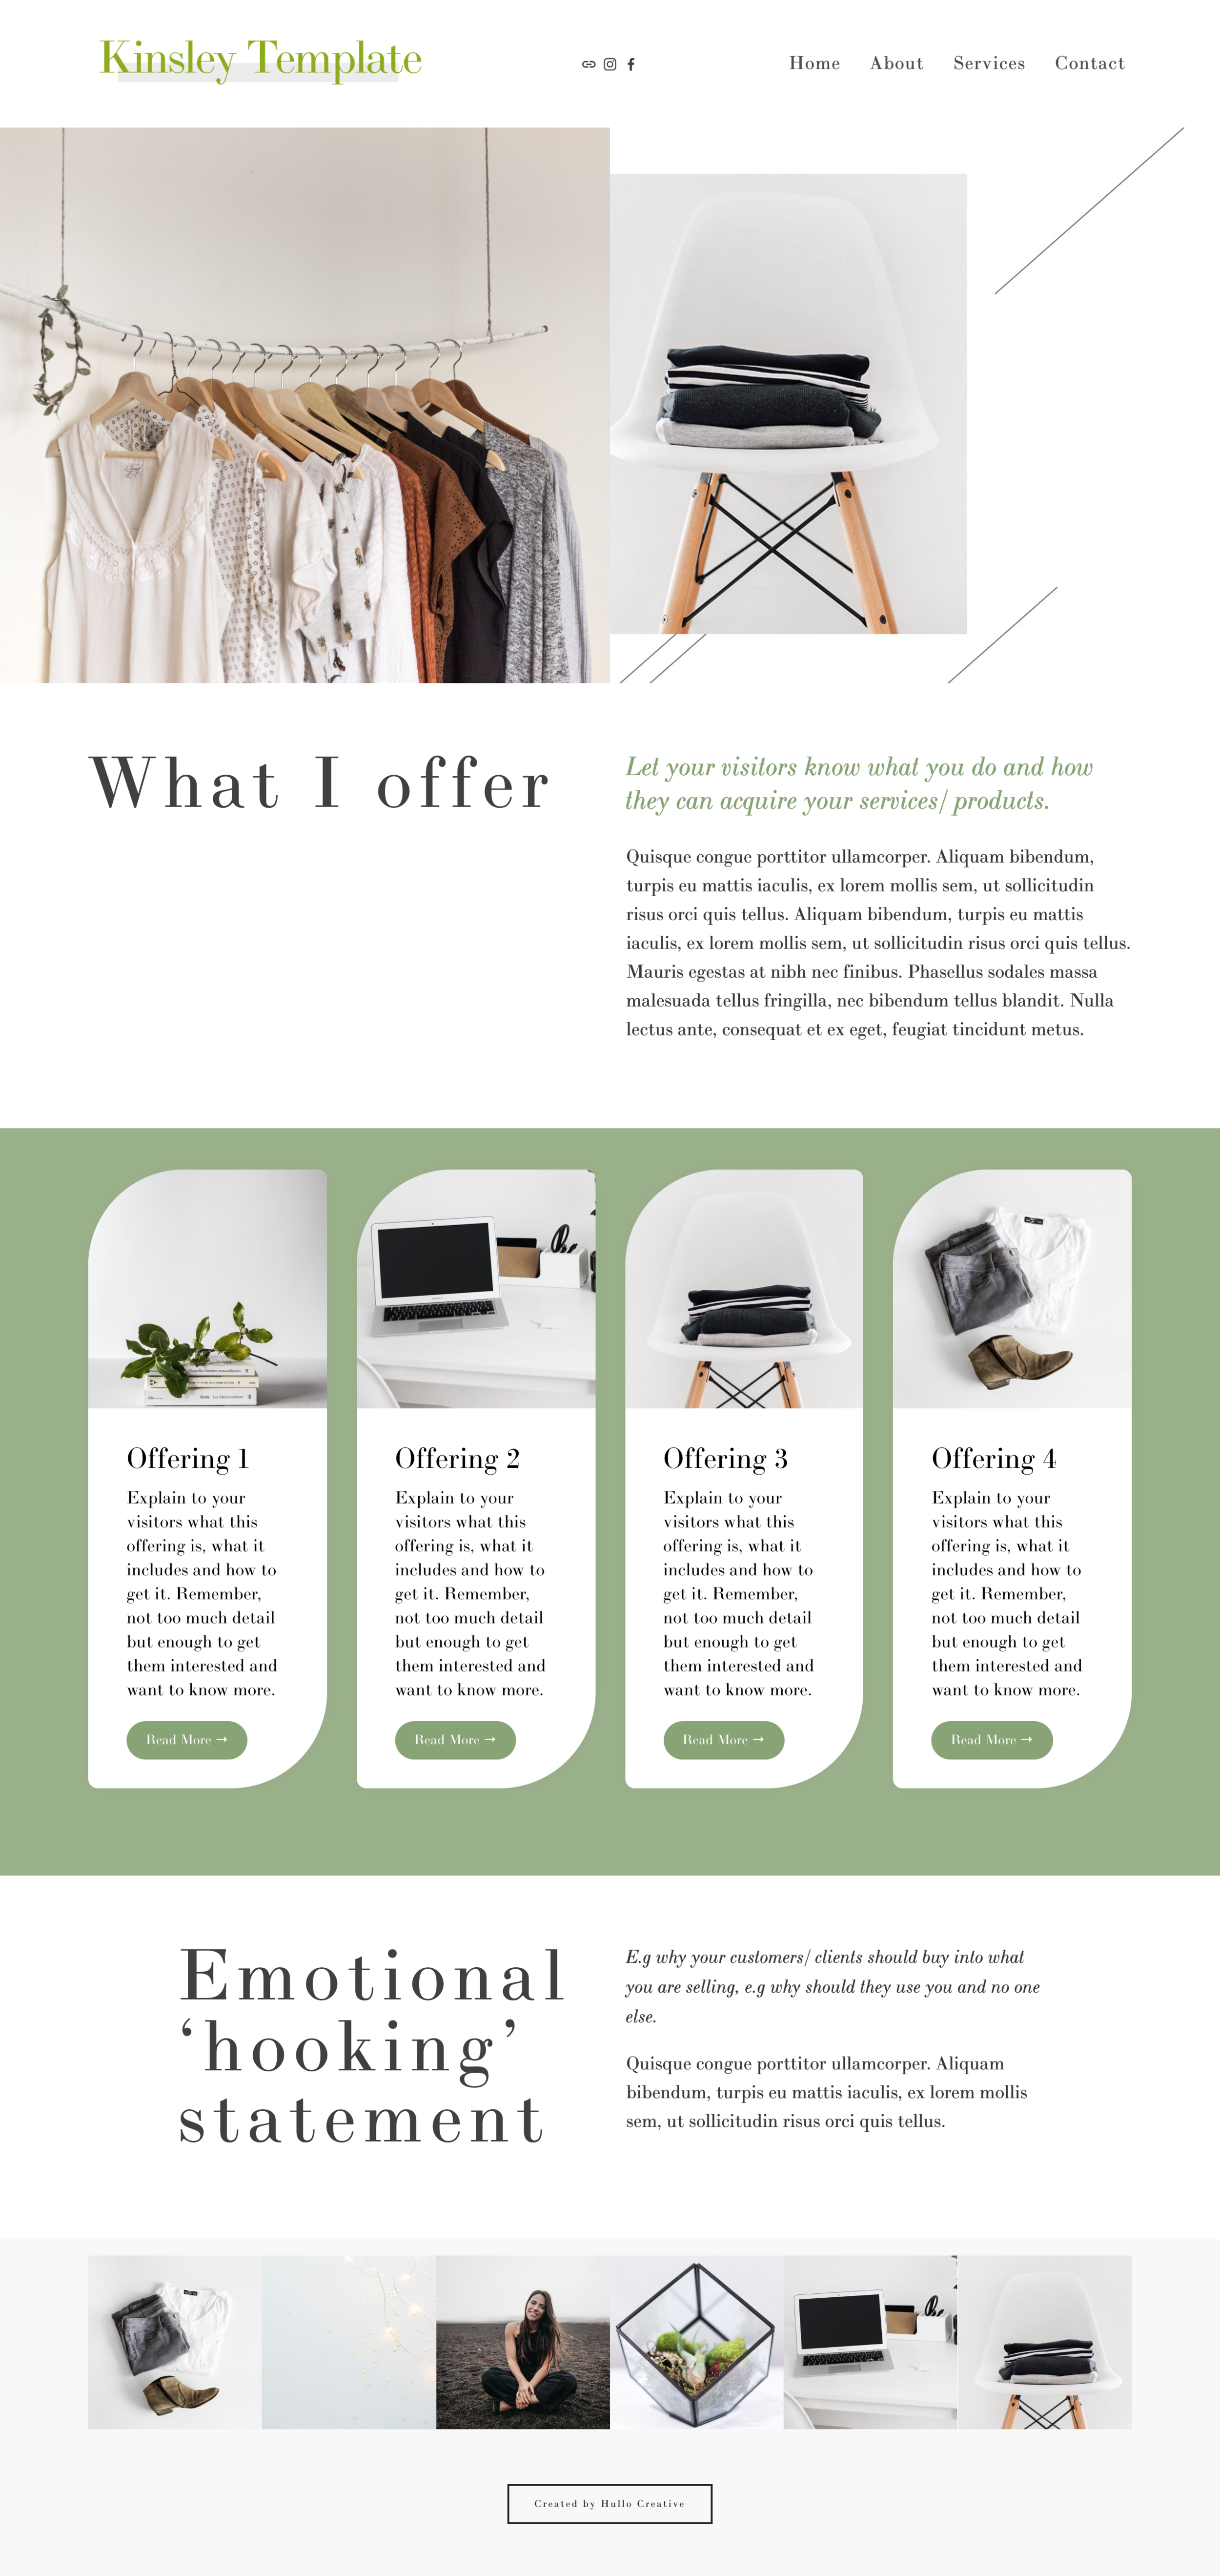 screencapture-kinsley-template-squarespace-services-2019-10-04-11_00_00.png